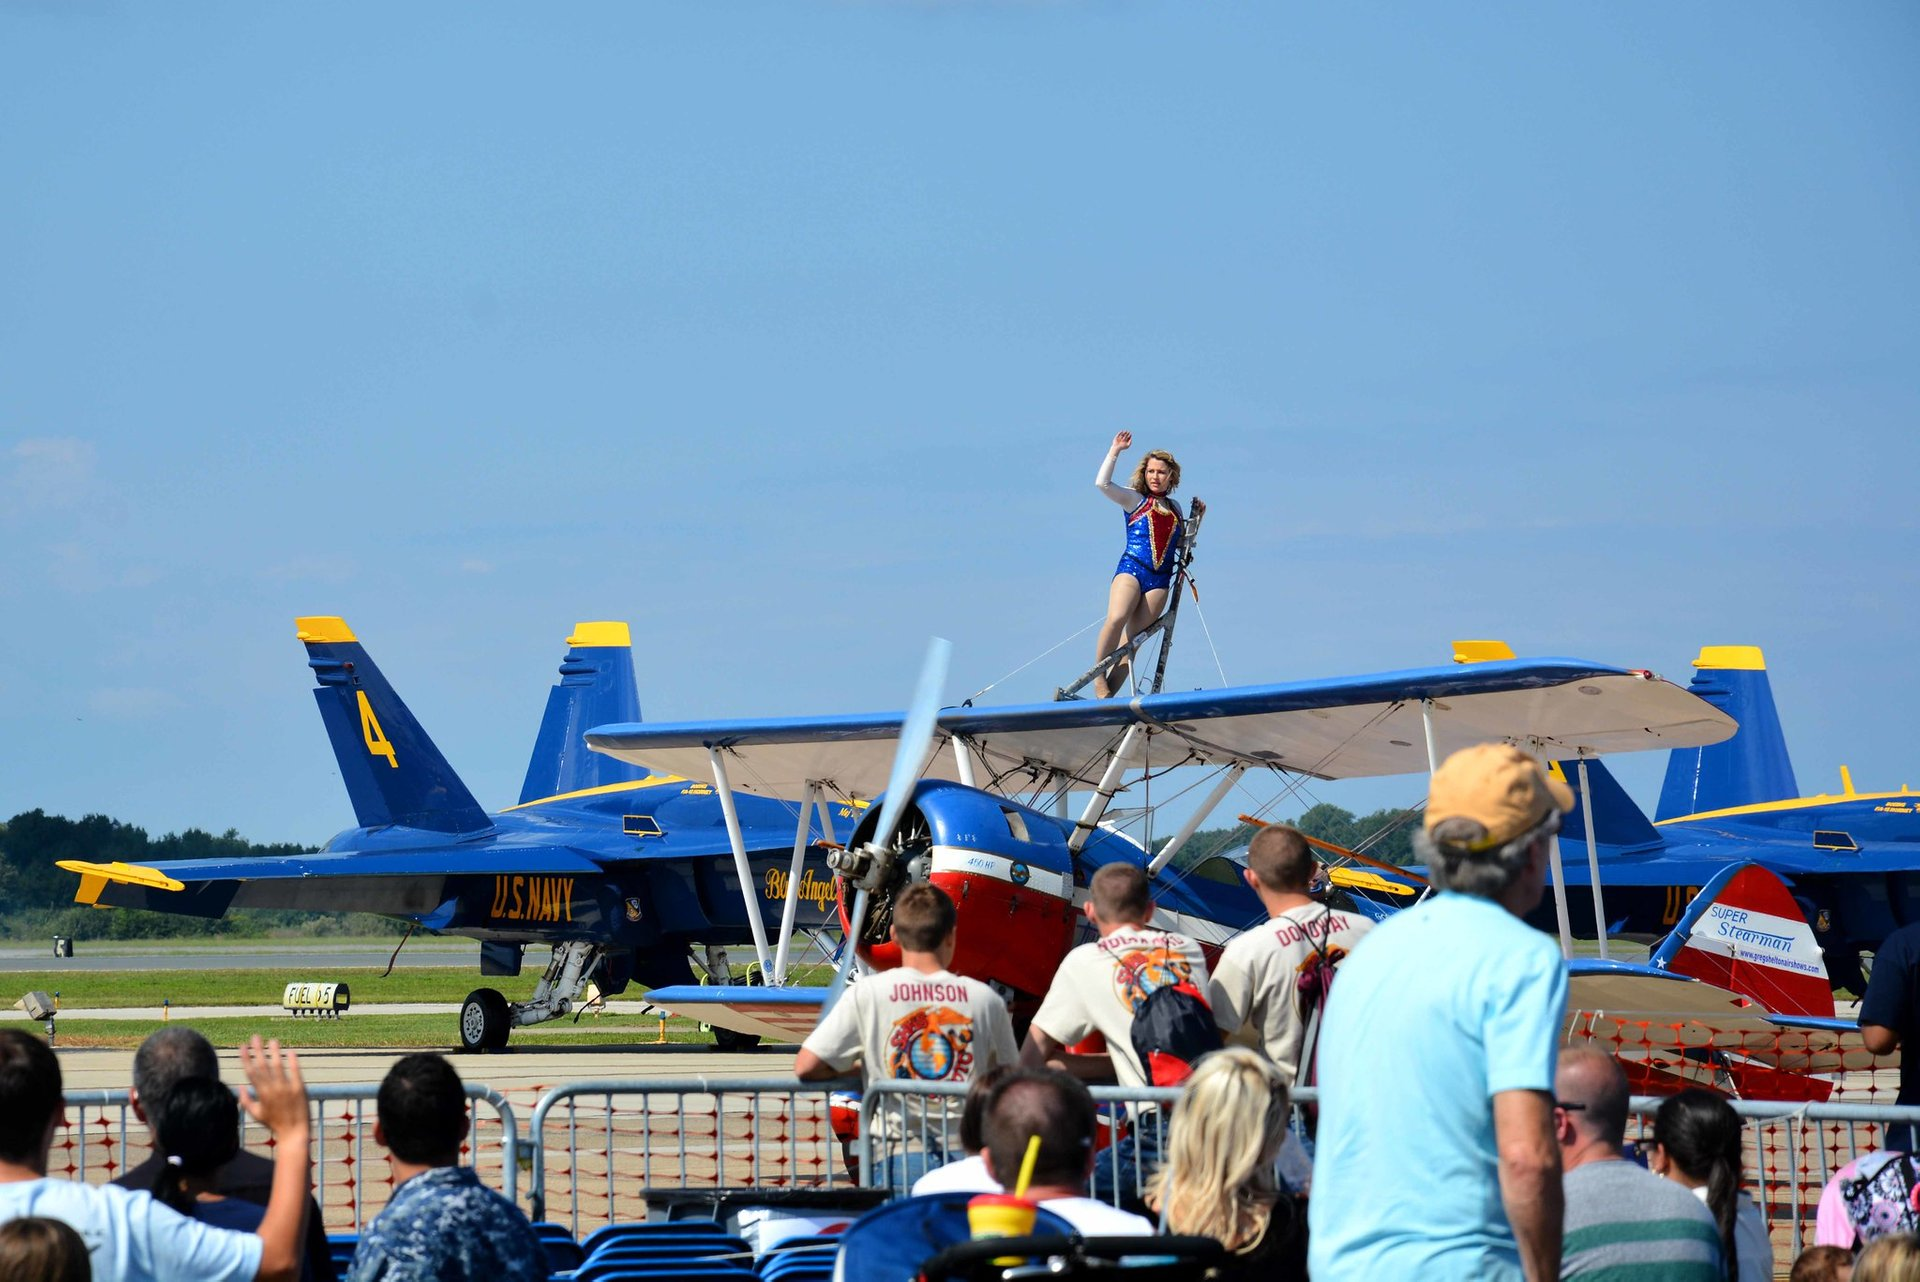 Best time for NAS Oceana Air Show in Virginia 2019